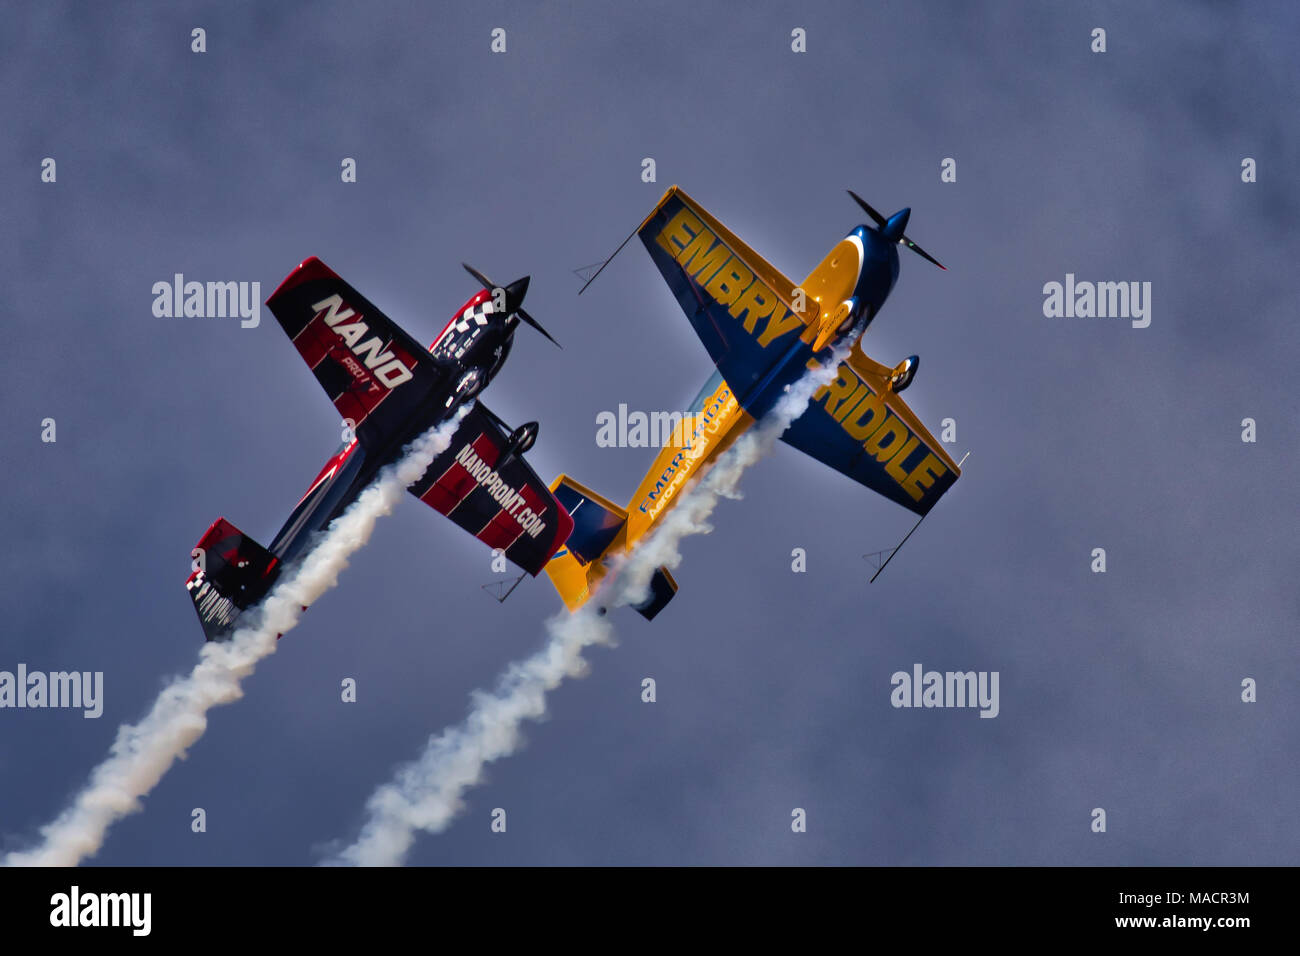 Stunt Flying - Stock Image